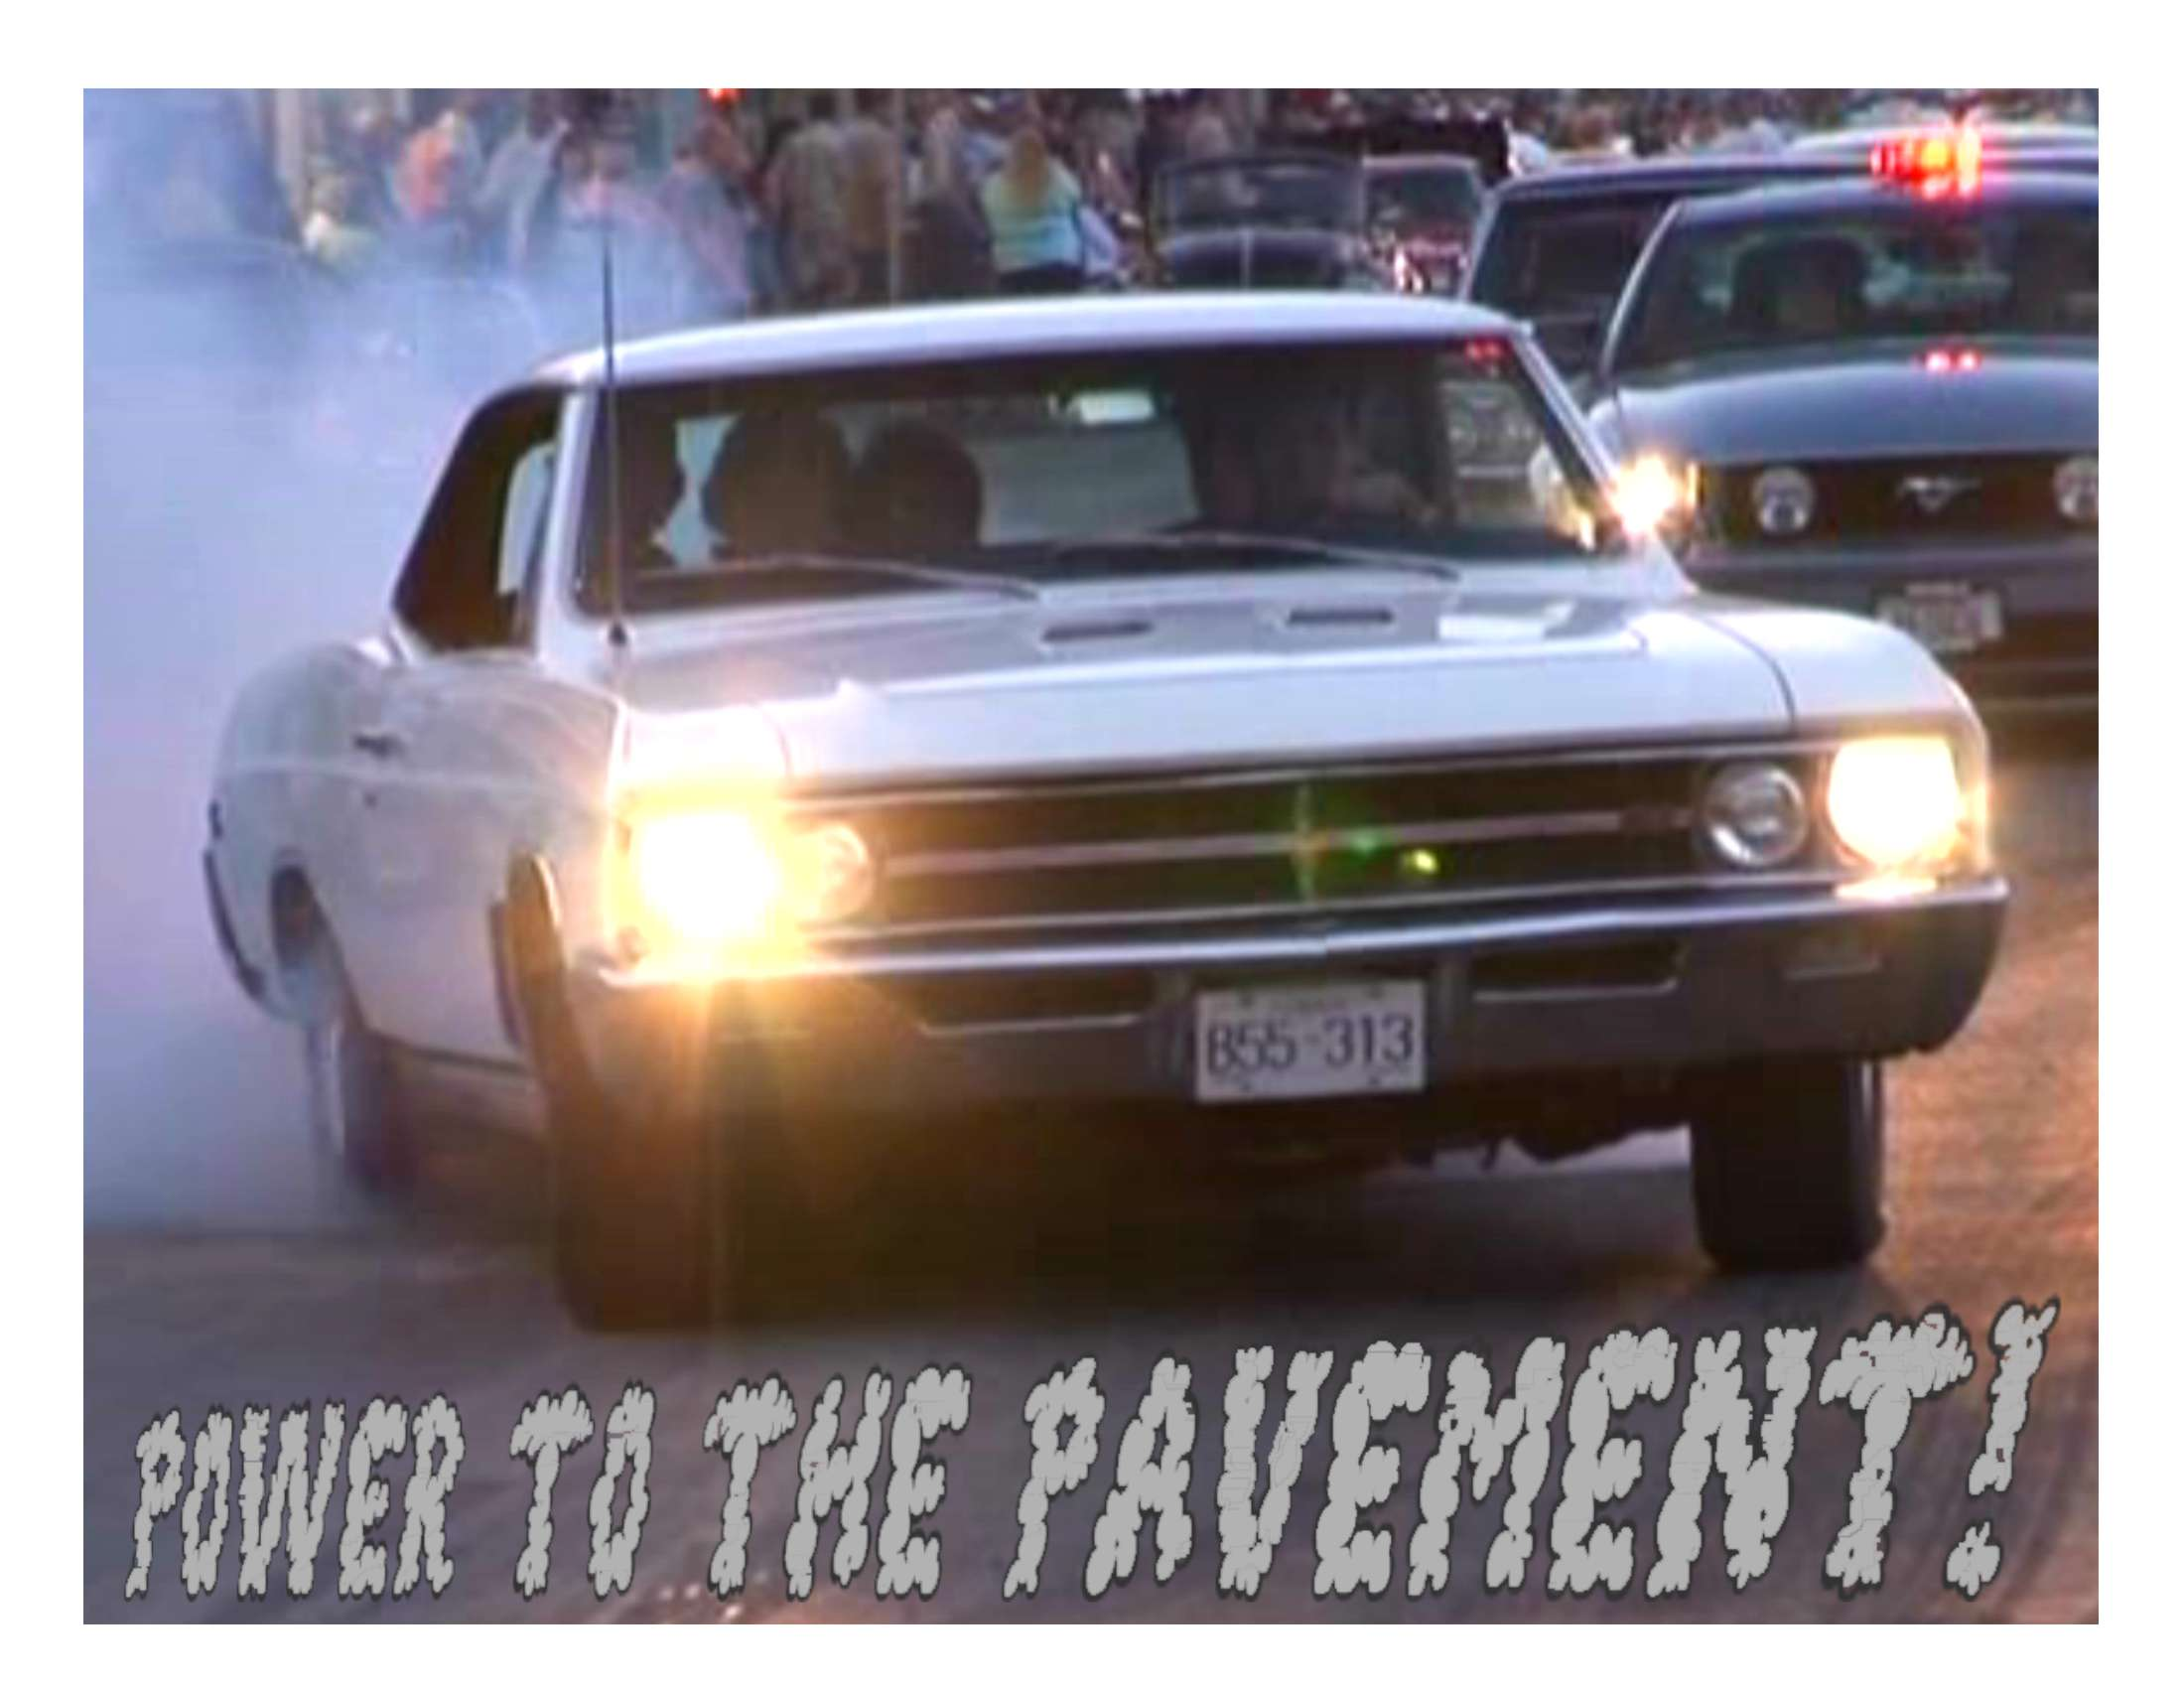 Power to the Pavement!